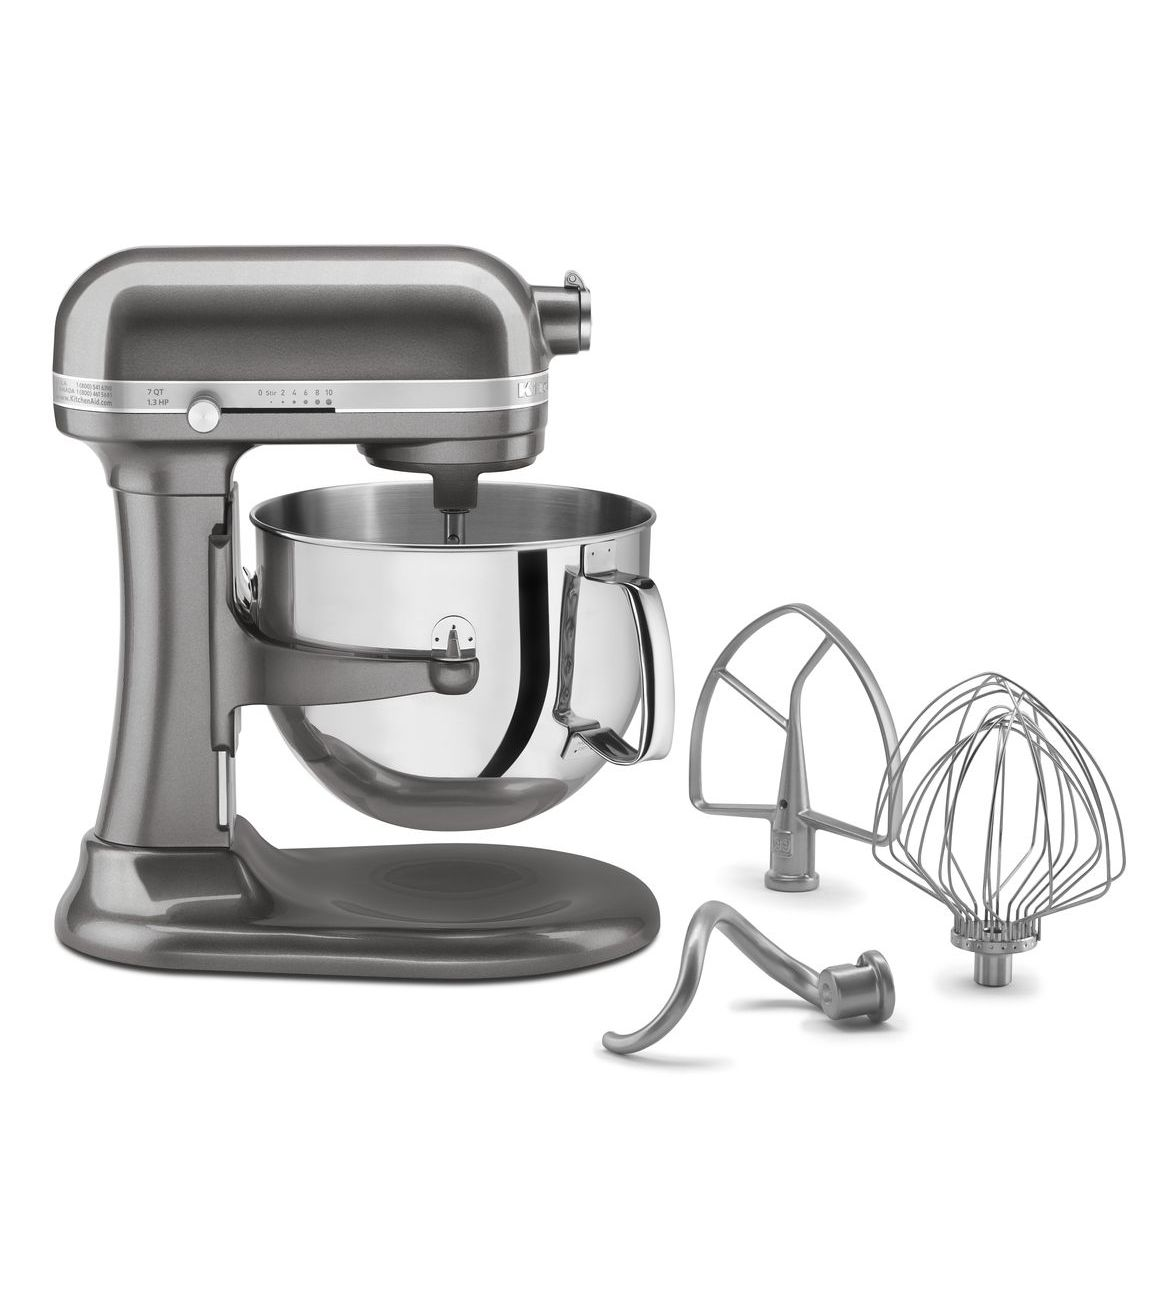 Details about Refurbished KitchenAid 7 Qt Bowl Lift Stand Mixer